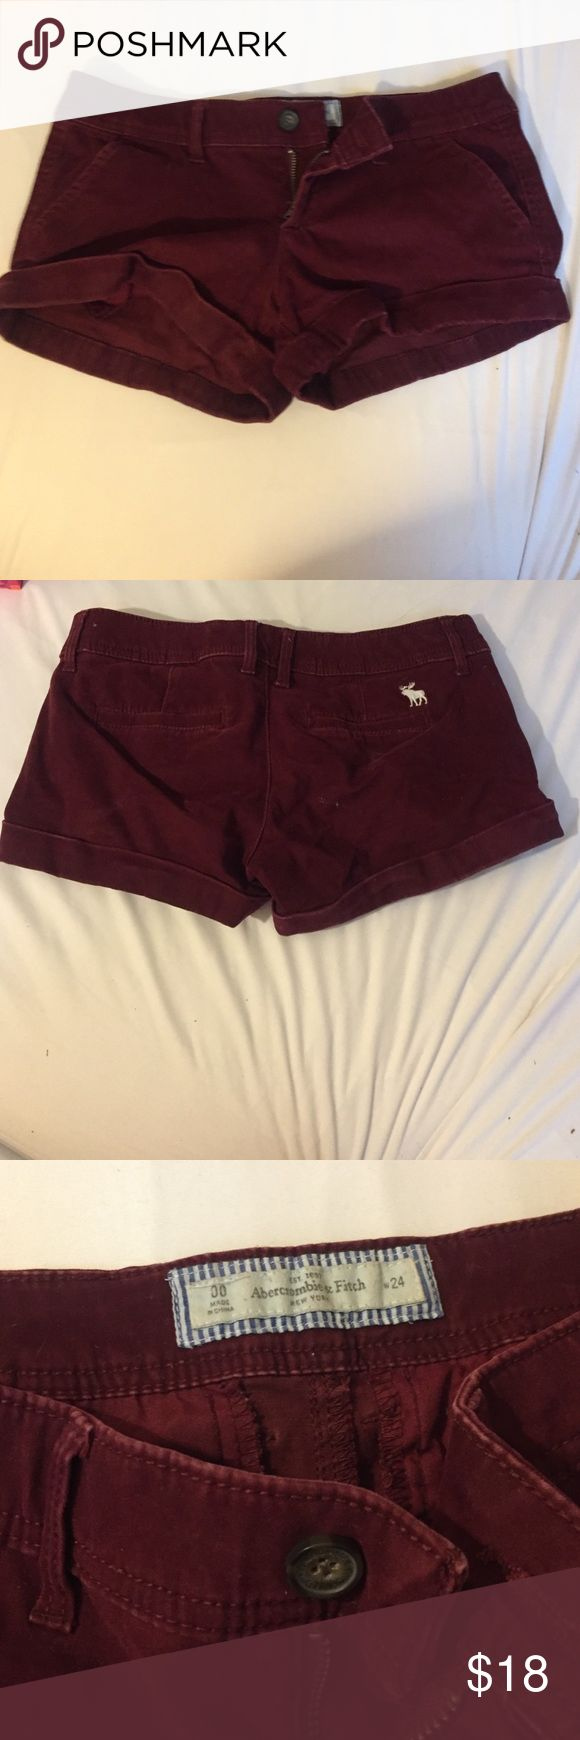 Maroon low waist Abercrombie and fitch shorts Maroon Abercrombie and fitch shorts, low waisted Abercrombie & Fitch Shorts